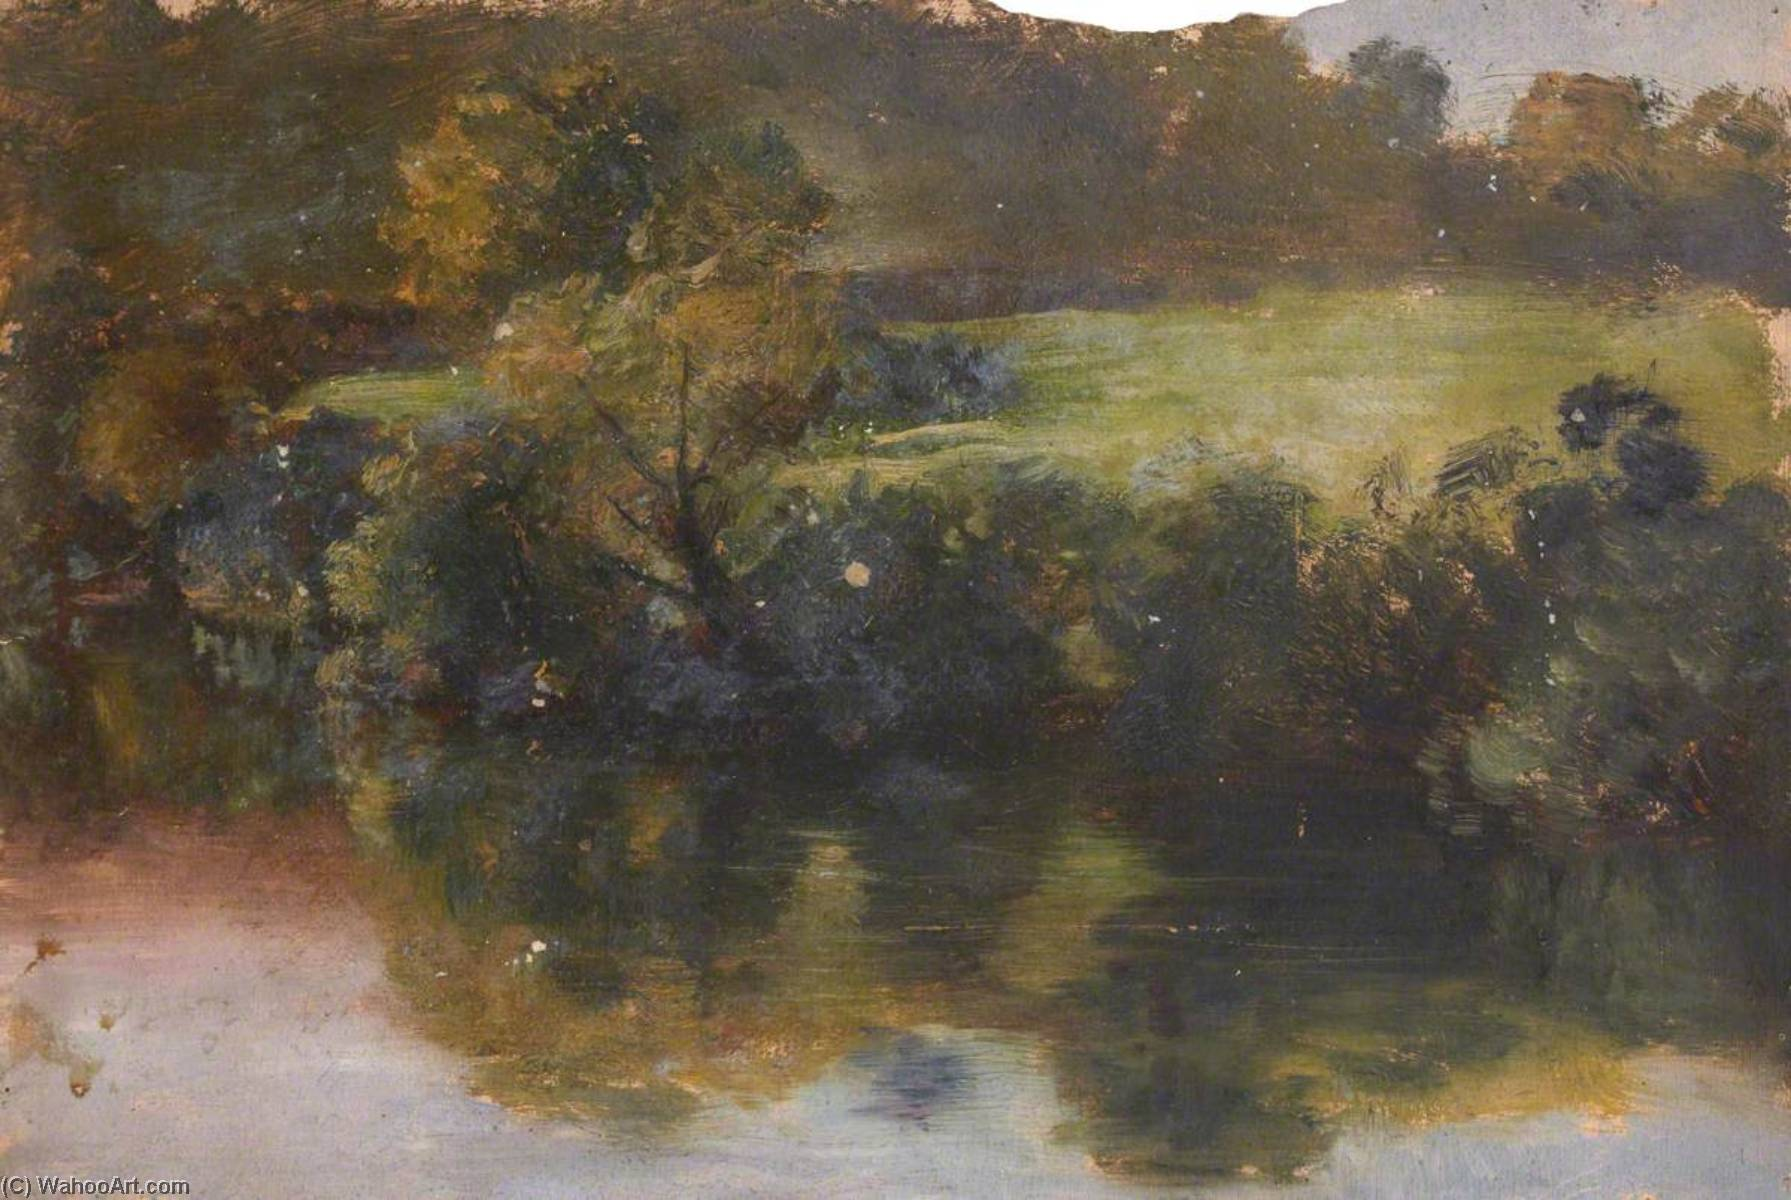 Trees Reflected in the Water, Oil by Thomas Stuart Smith